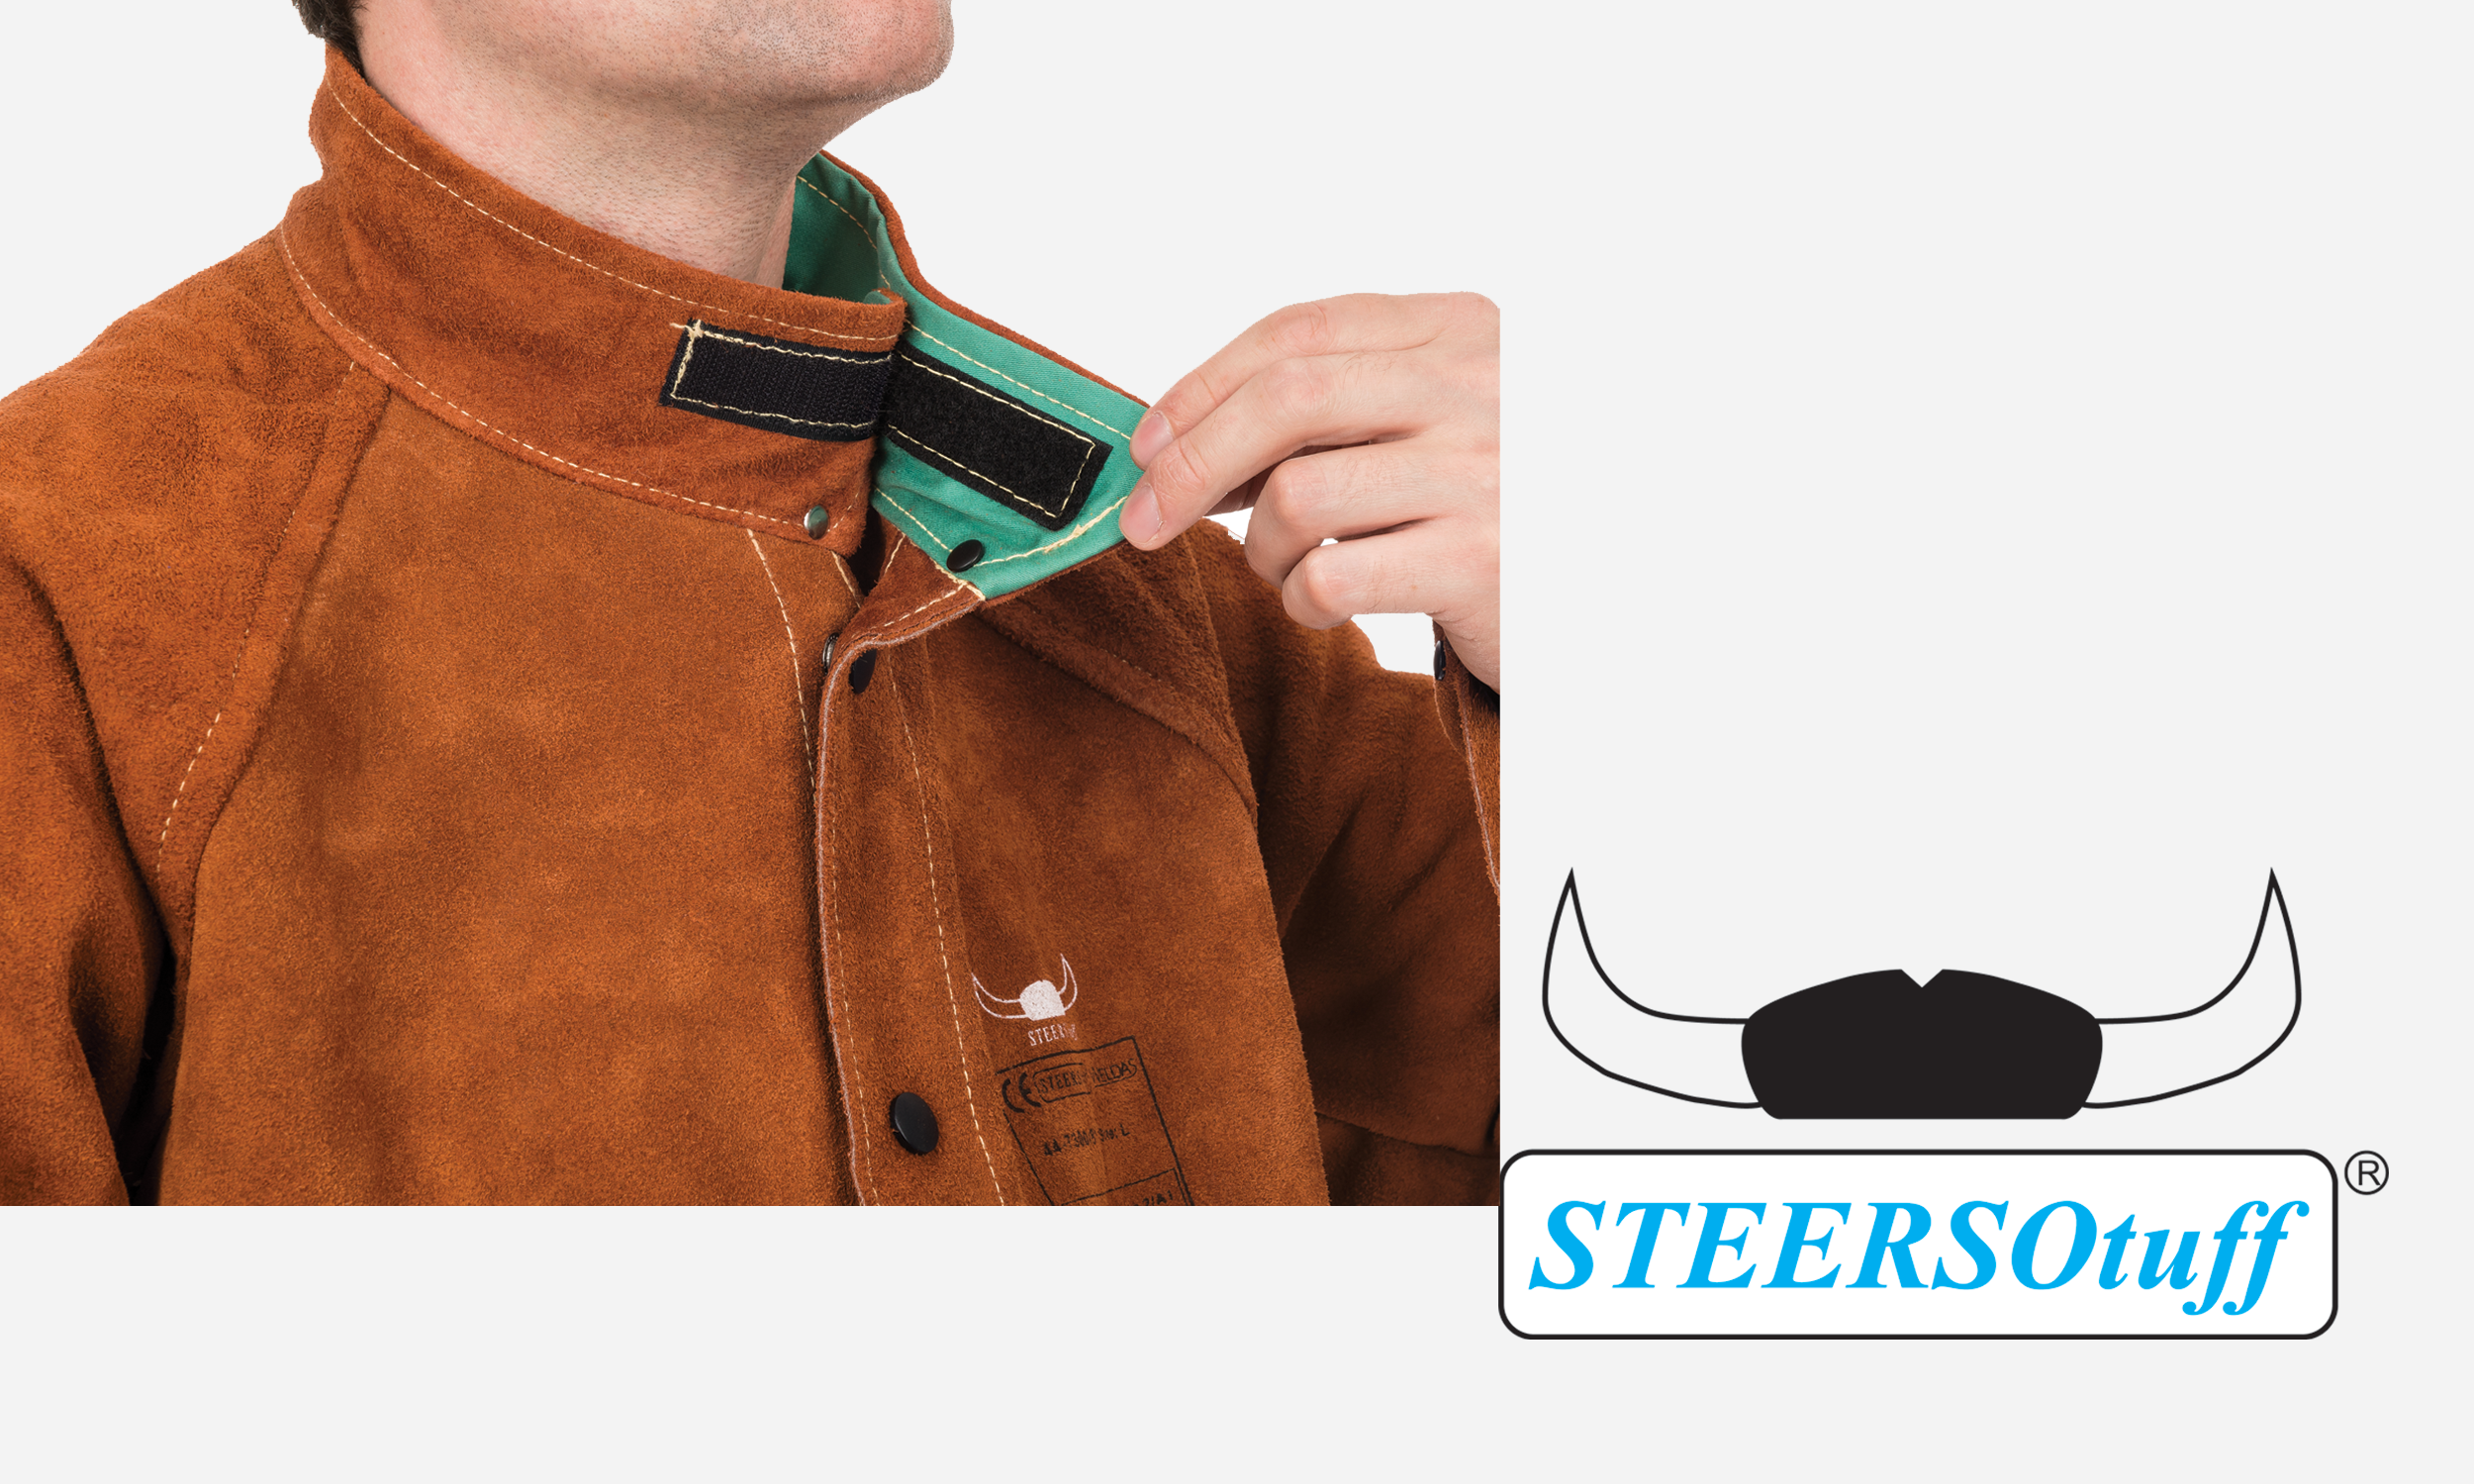 44-7300 STEERSOtuff Leather Jacket Roll-up Collar.png